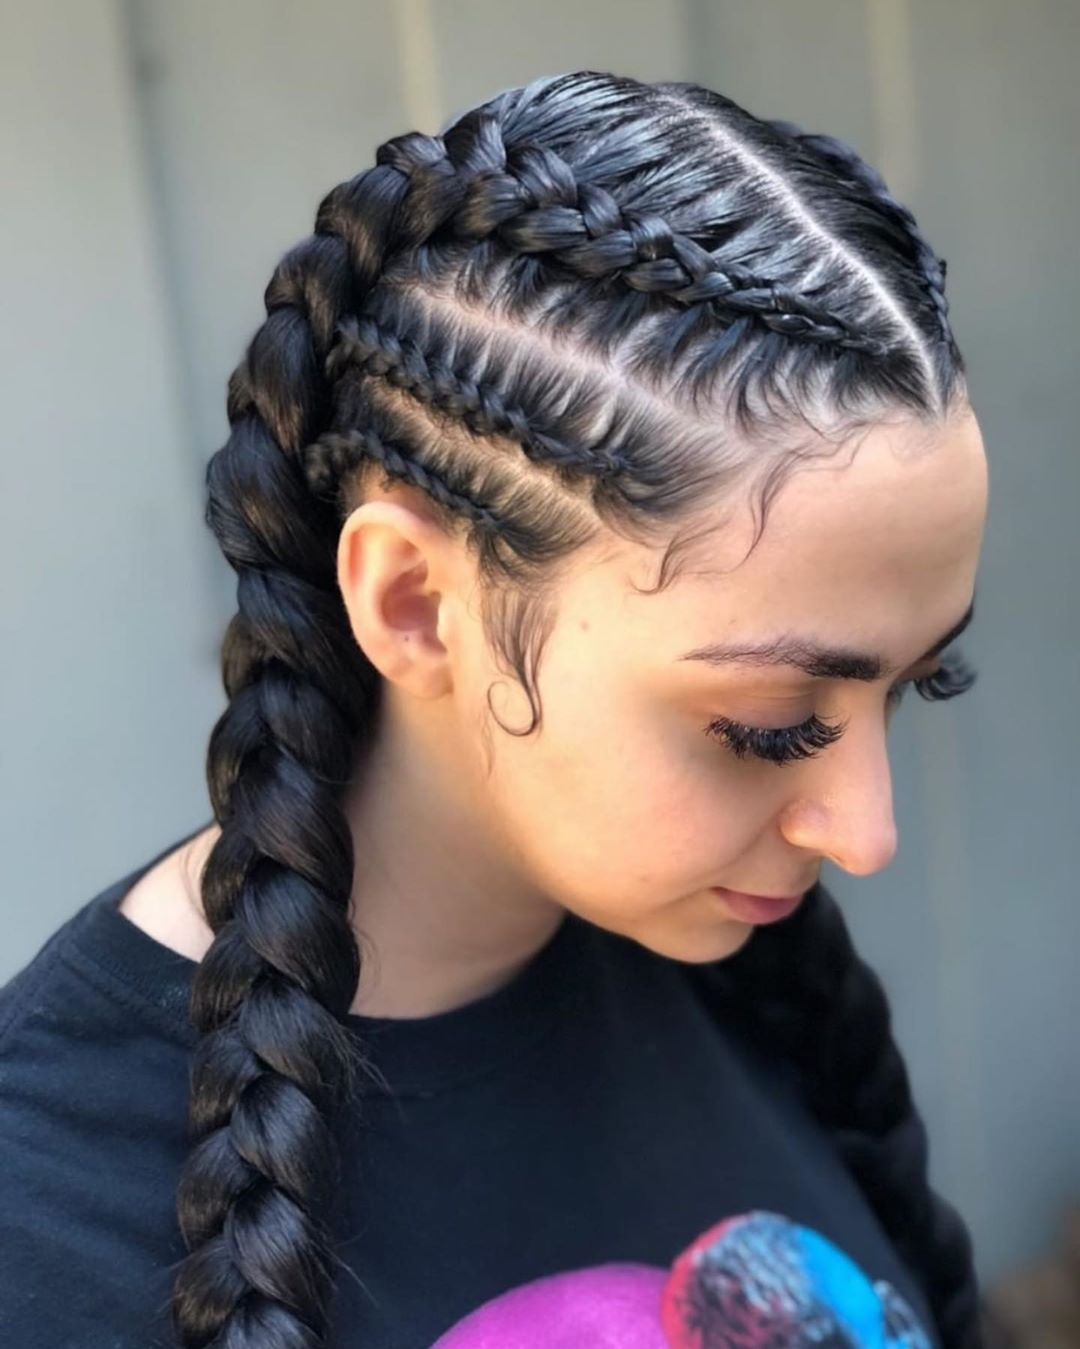 Your Braids On Instagram So In Love With These Braids Braid By Everylittlestrand Hair Styles Braided Hairstyles Long Hair Styles